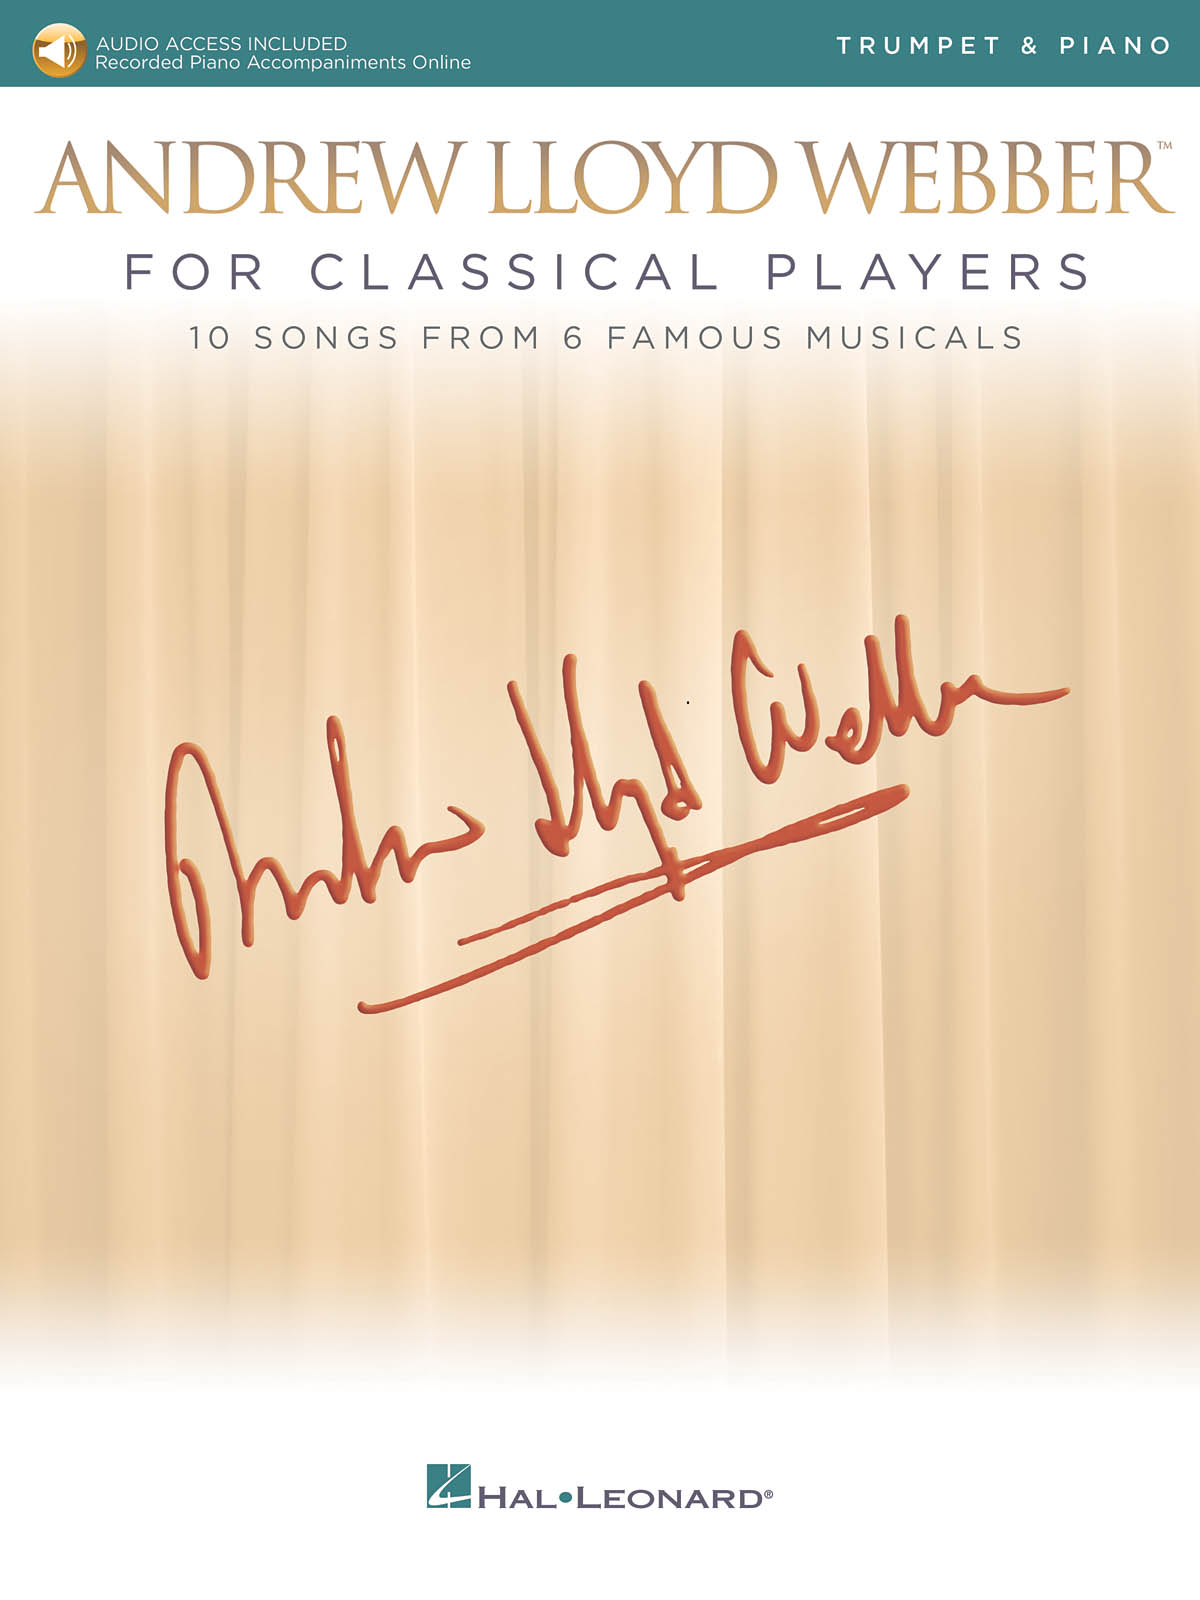 Andrew Lloyd Webber: Andrew Lloyd Webber for Classical Players: Trumpet and